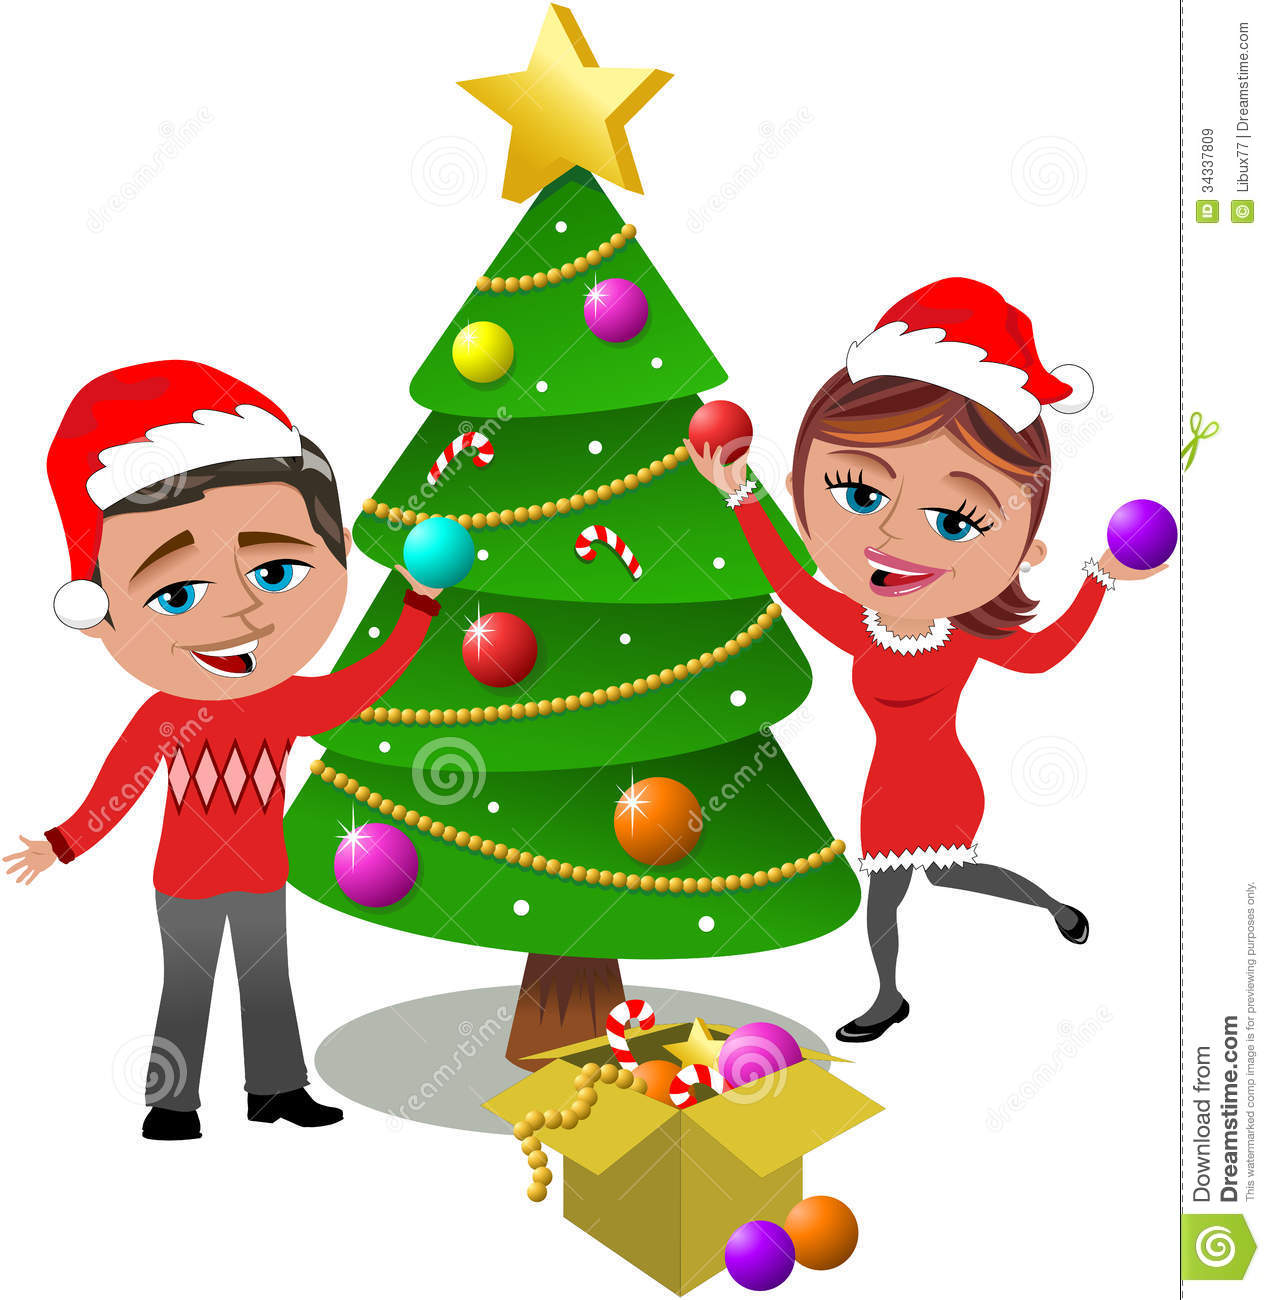 Christmas Tree clipart new year tree Tree · Decorated Clipart Decorated